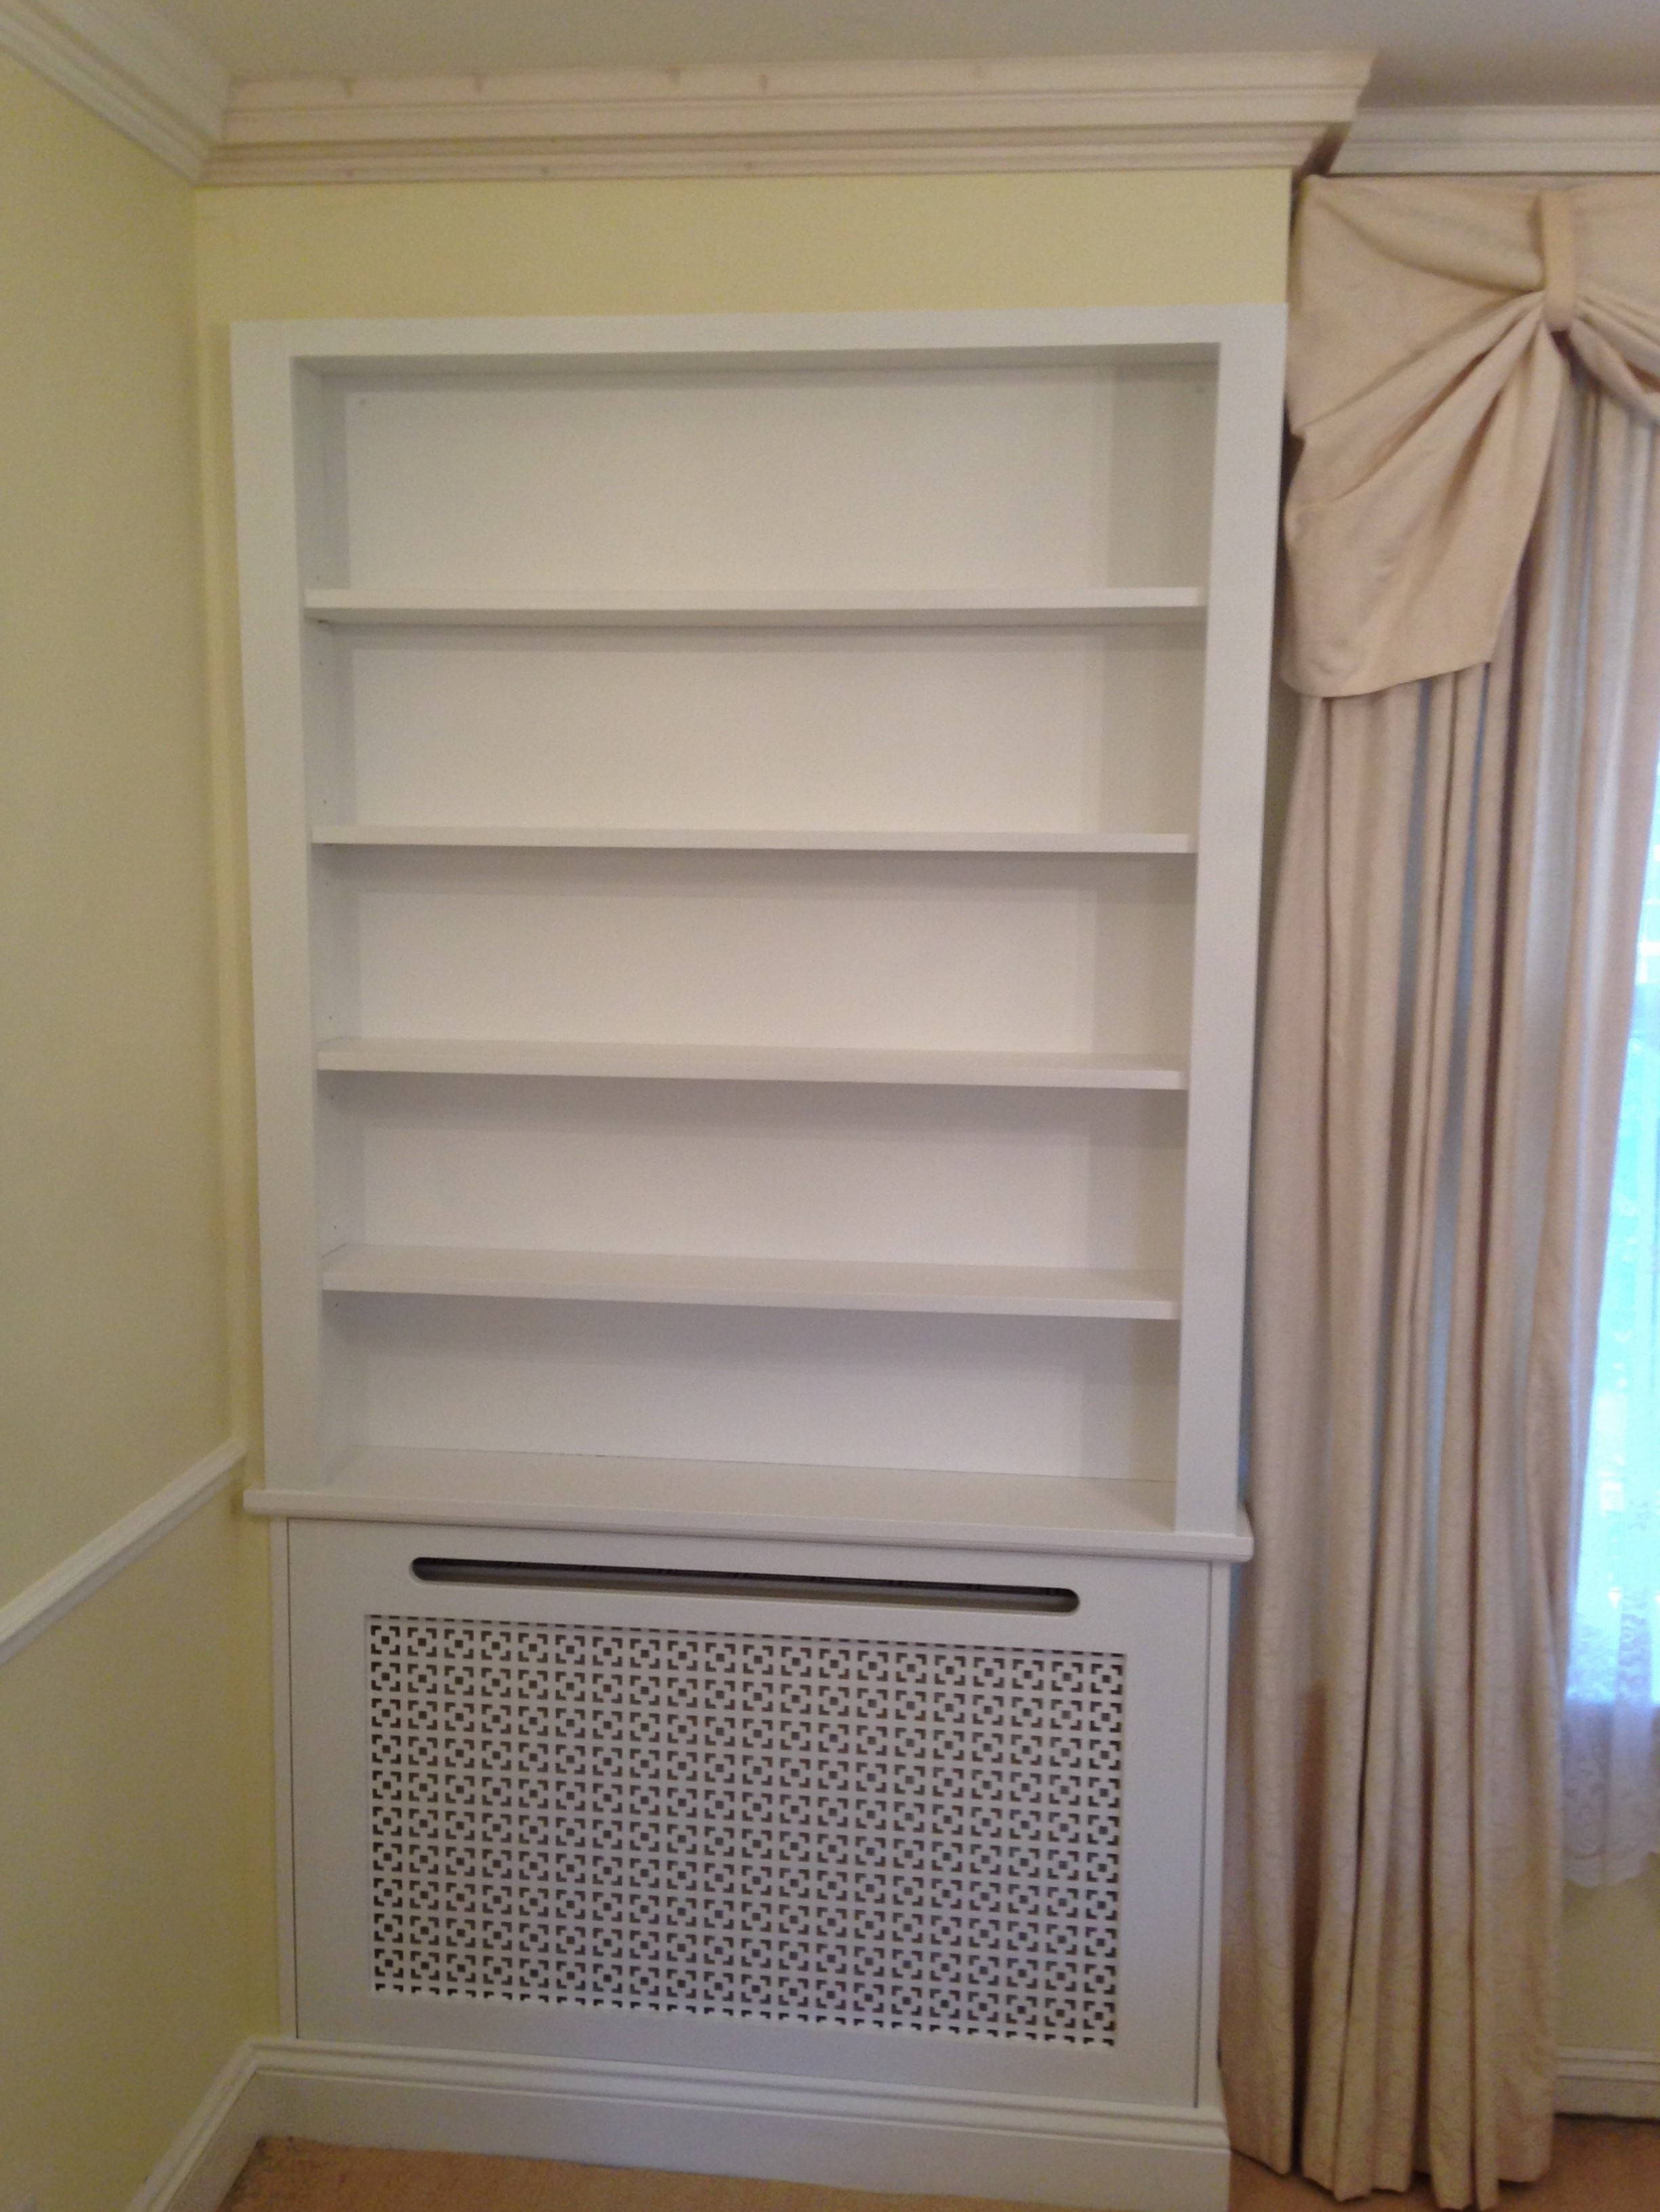 Radiator Cover With Bookcases Pertaining To Widely Used Radiator Cover Bookcase – Harrow Builders And Bespoke Joinery – Lj (View 10 of 15)